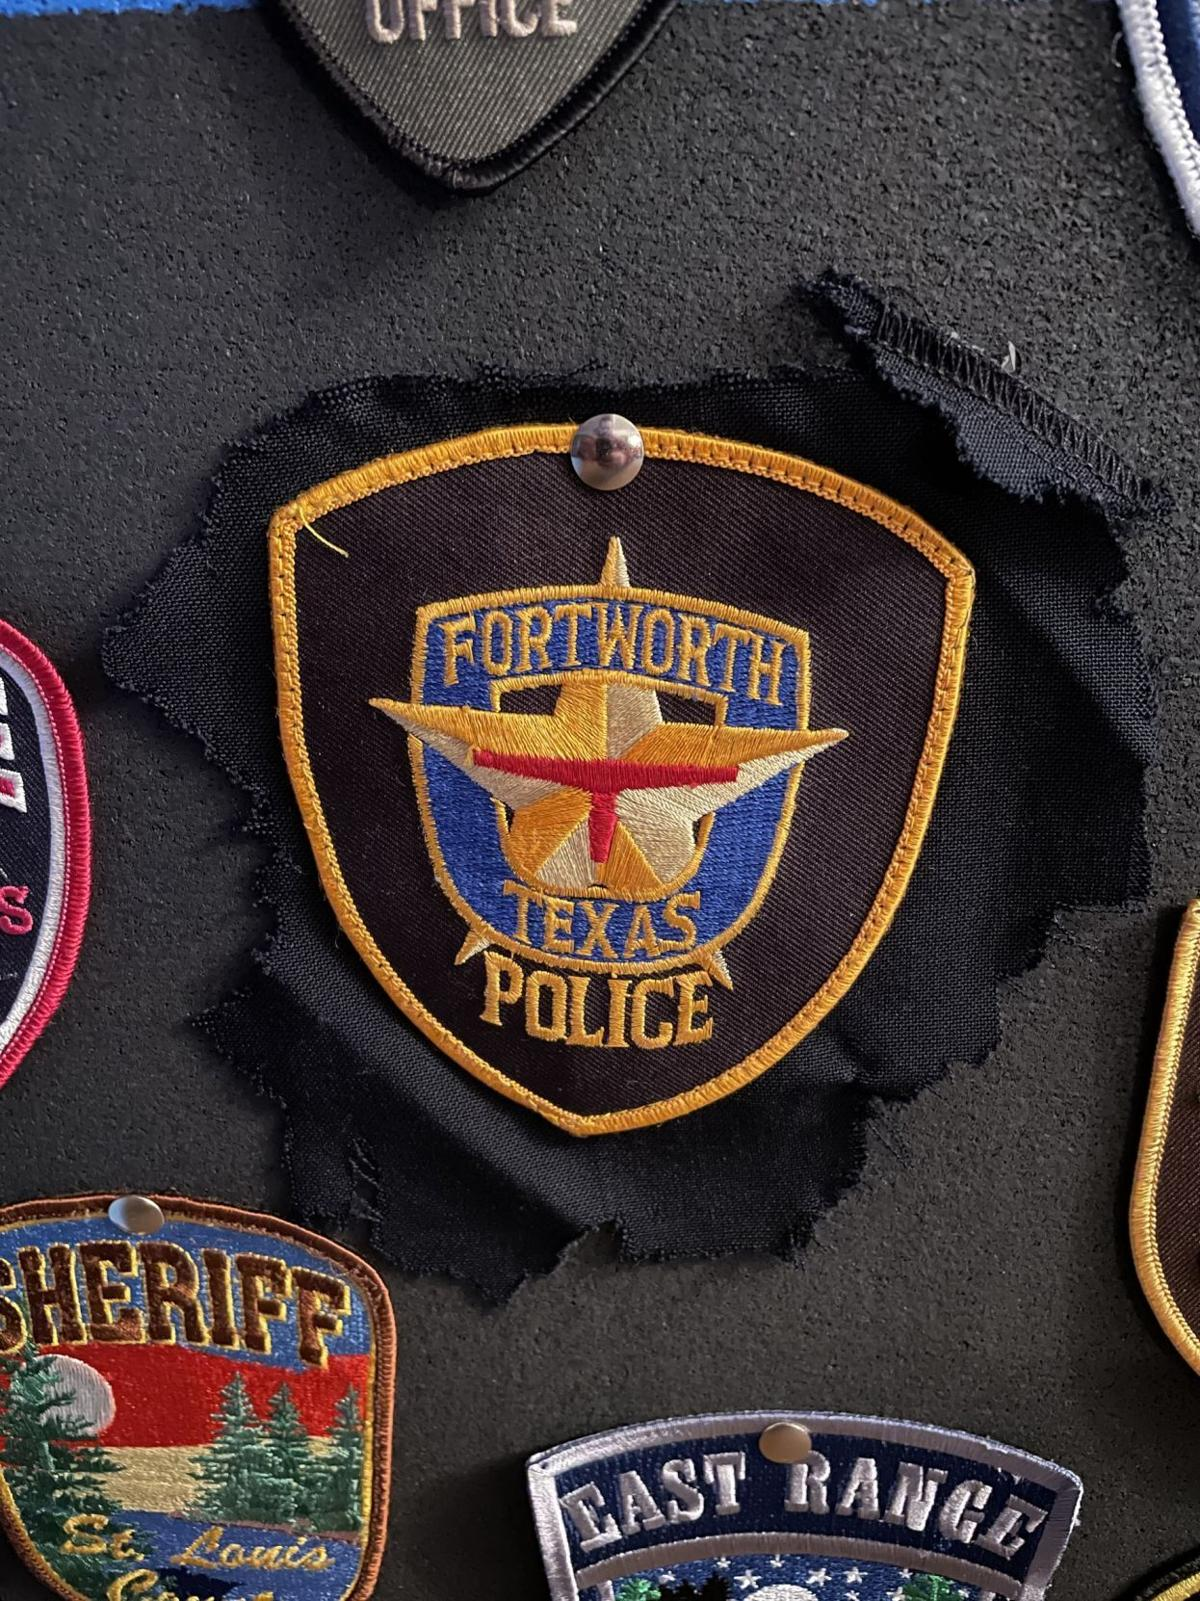 Fort Worth patch